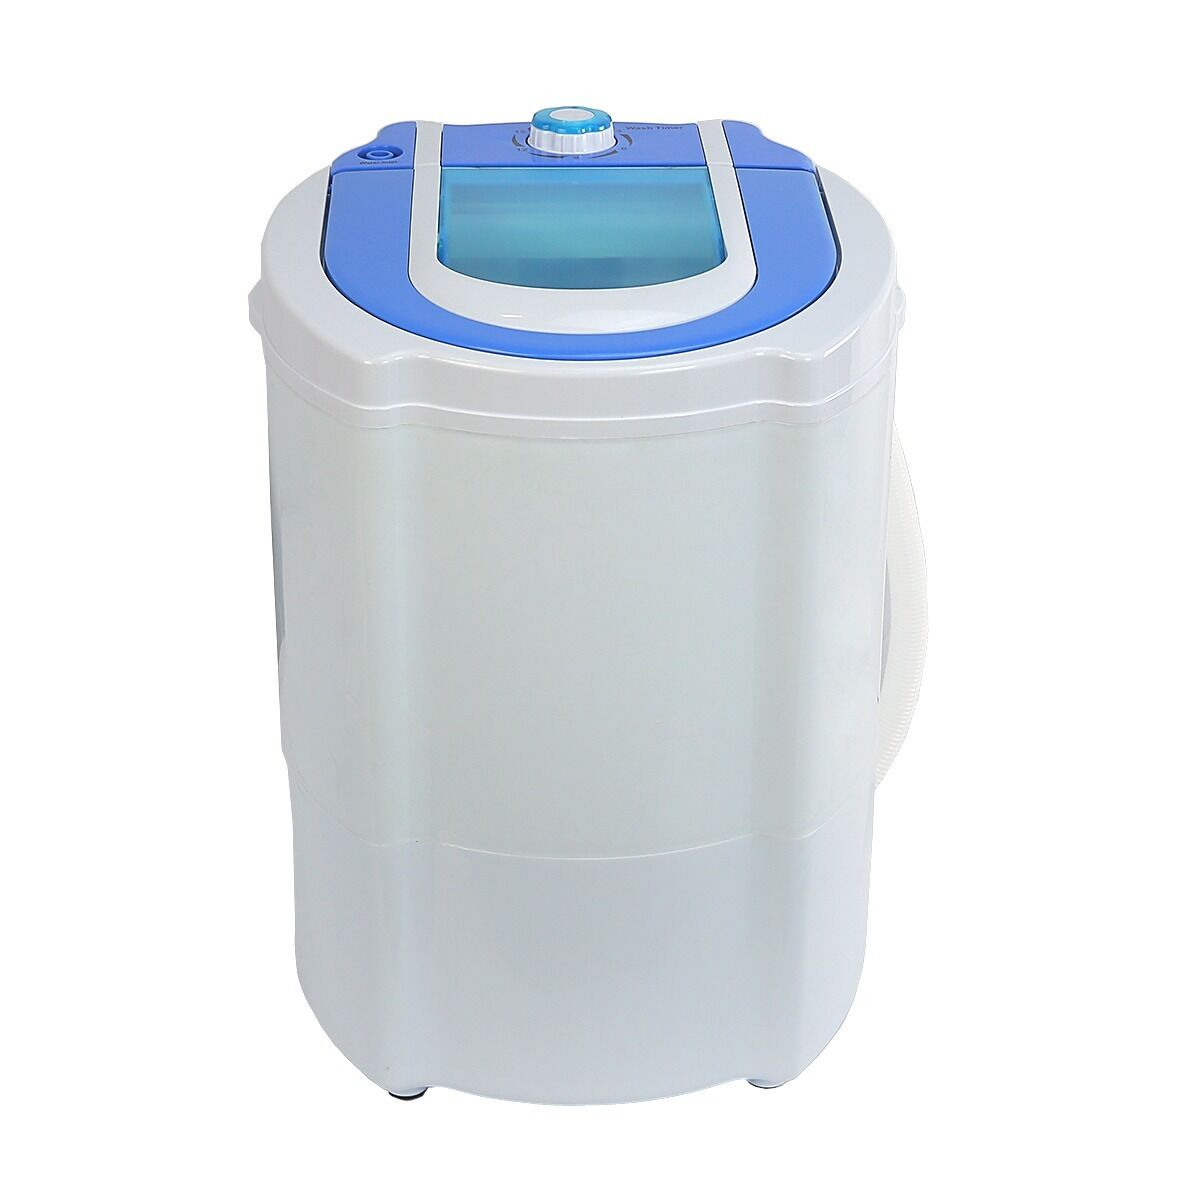 Best Rated Countertops Portable Countertop Mini Washing Machine 5lbs Rated Max